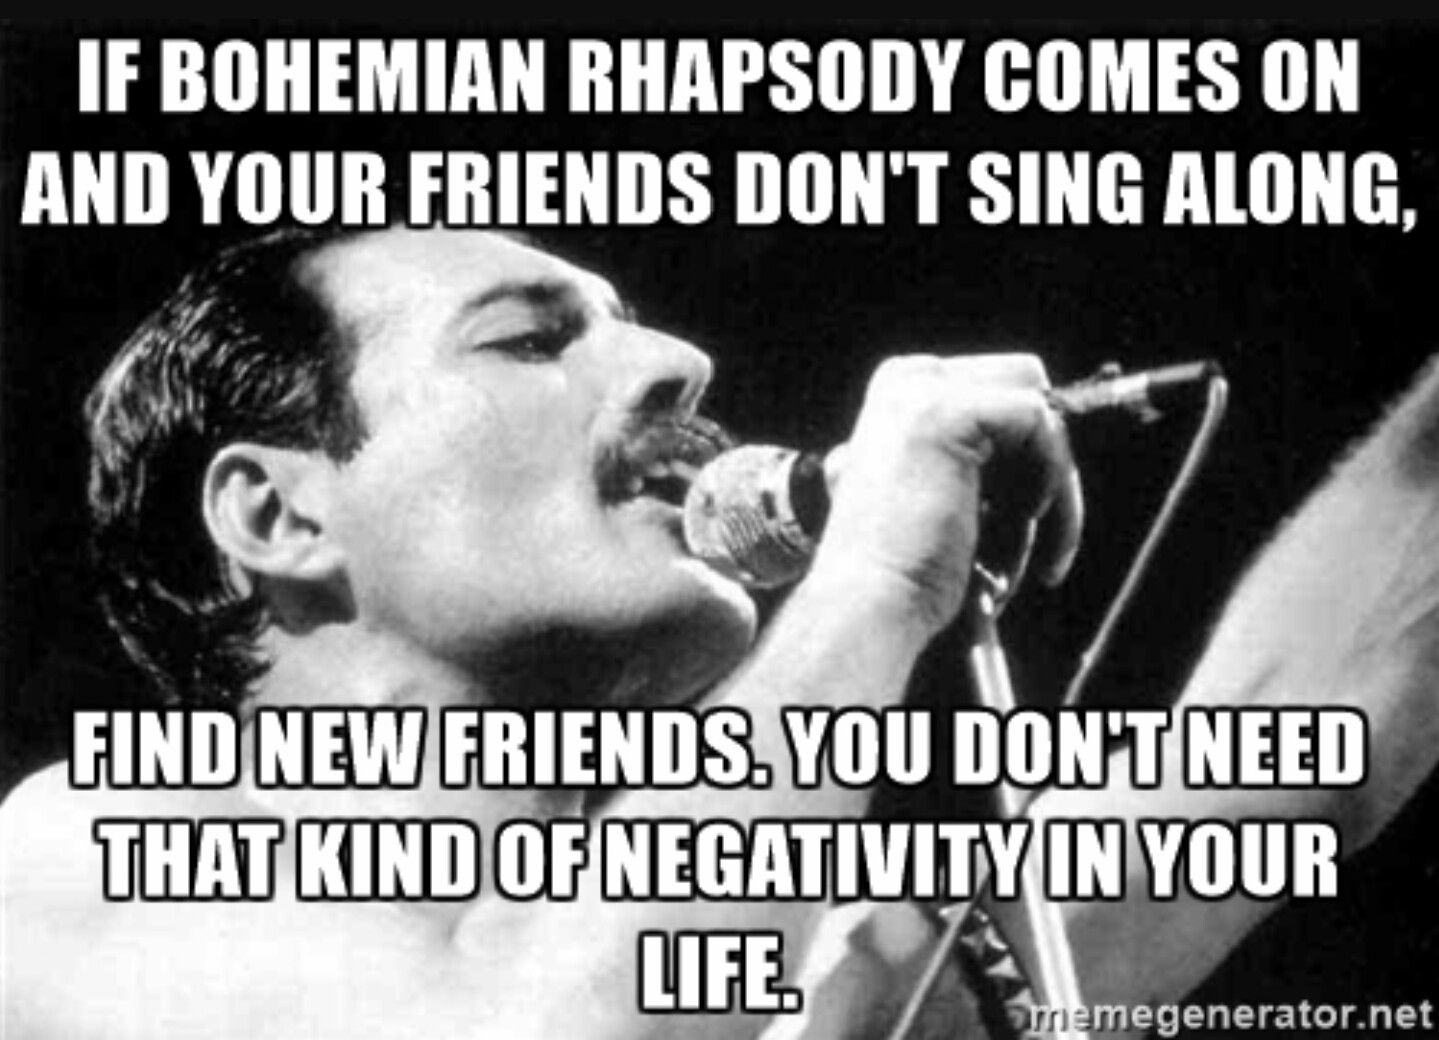 Bohemian Rhapsody. Yeah right, as if there's a person alive that doesn't sing along!!! Lol